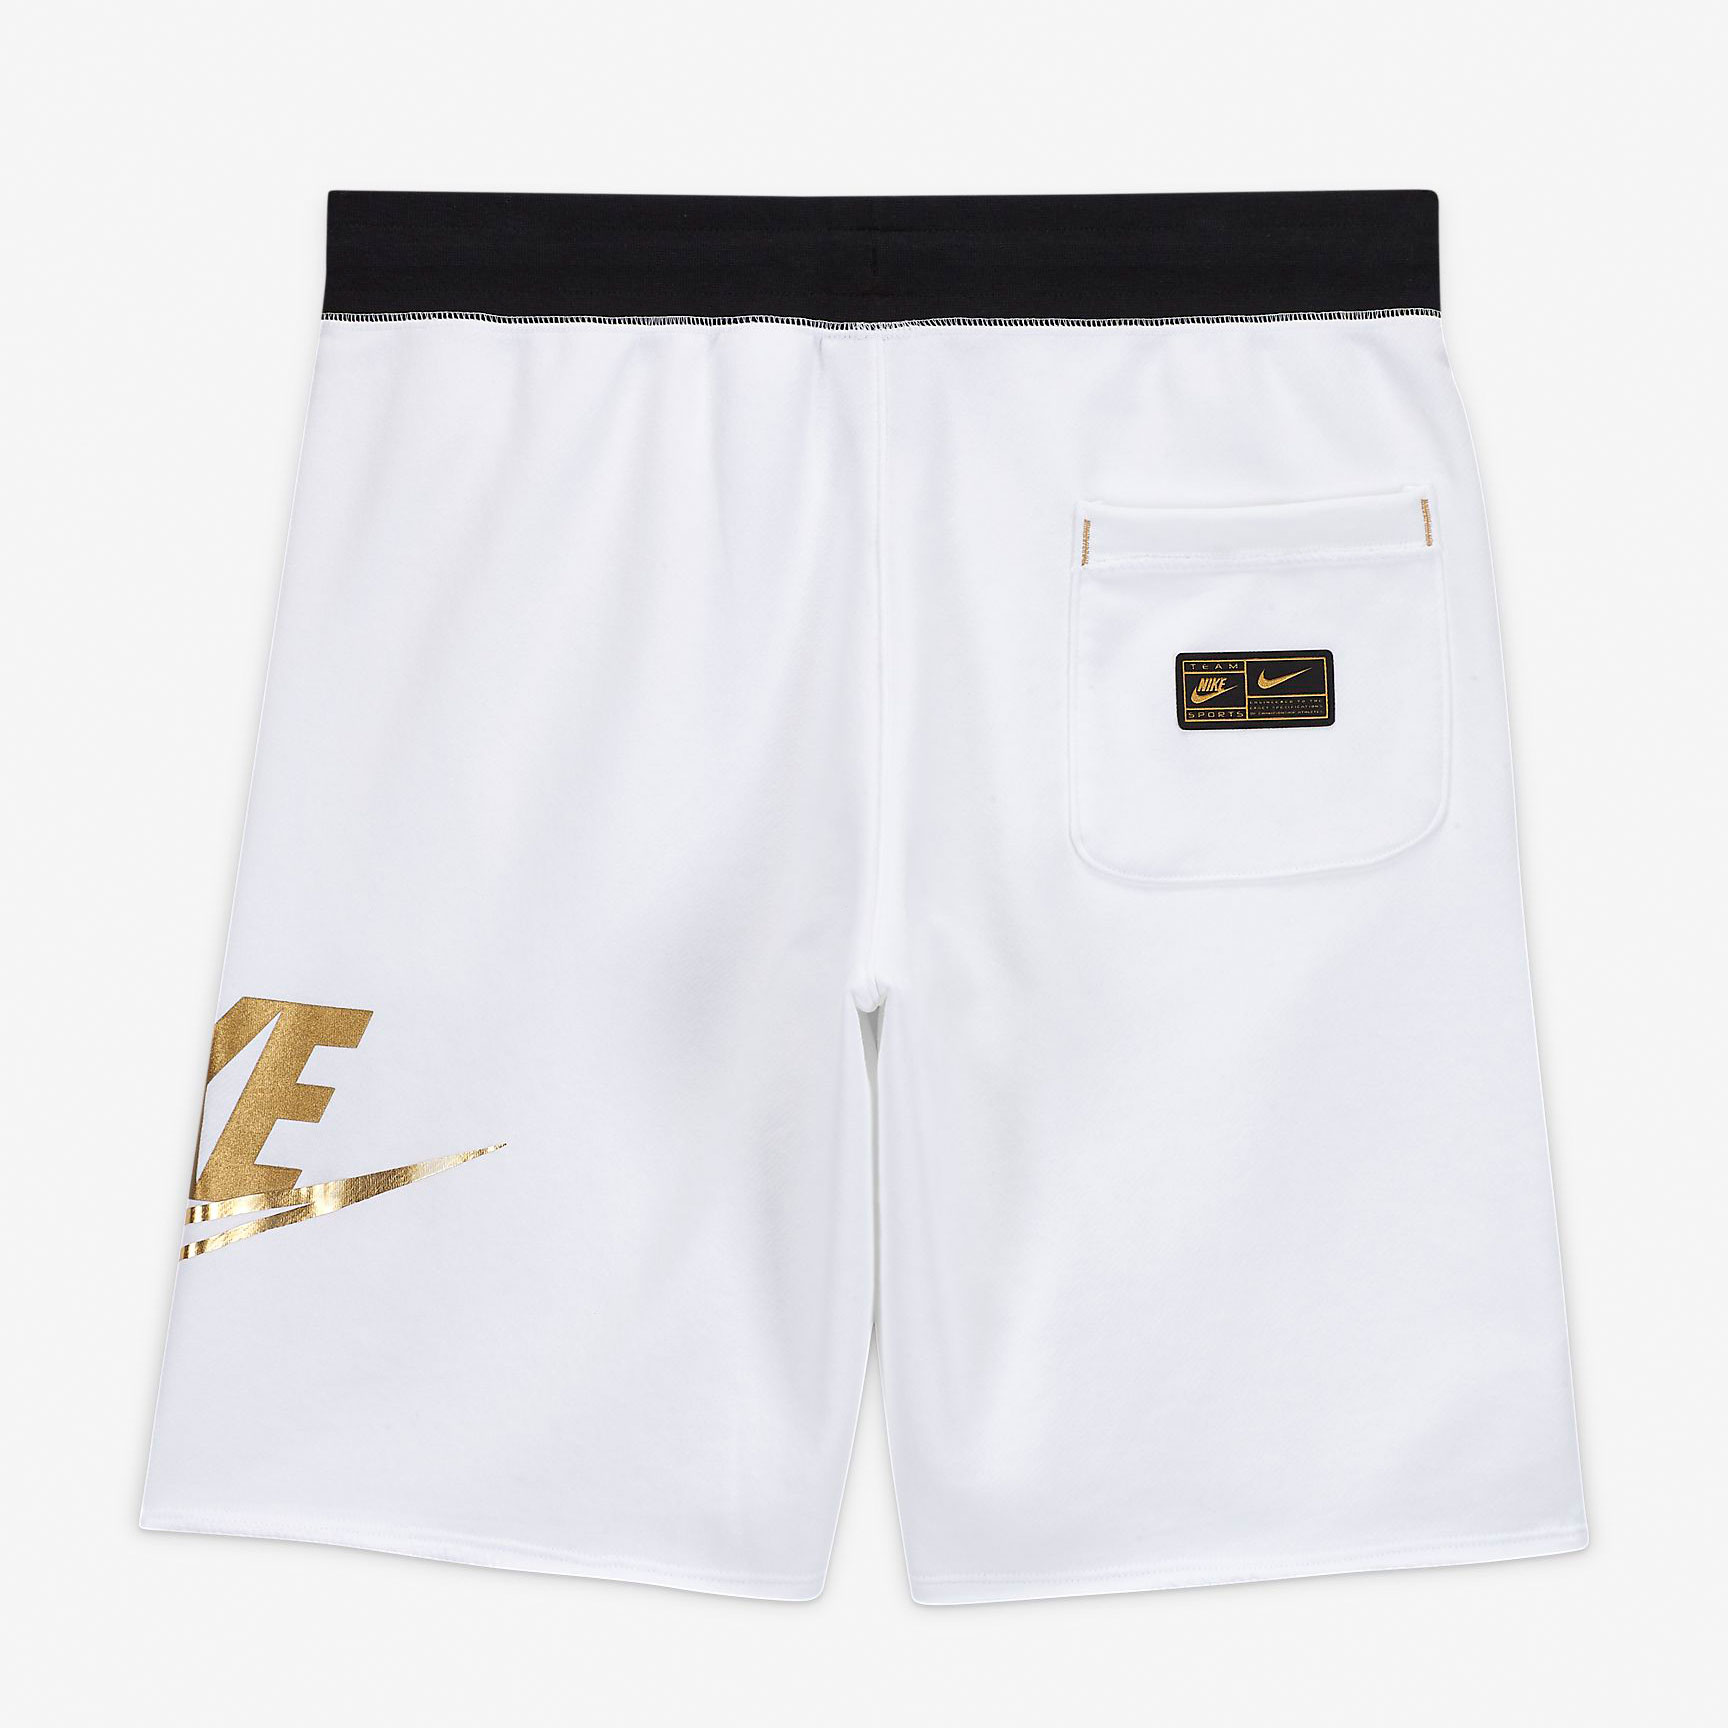 nike-gold-medal-shorts-2